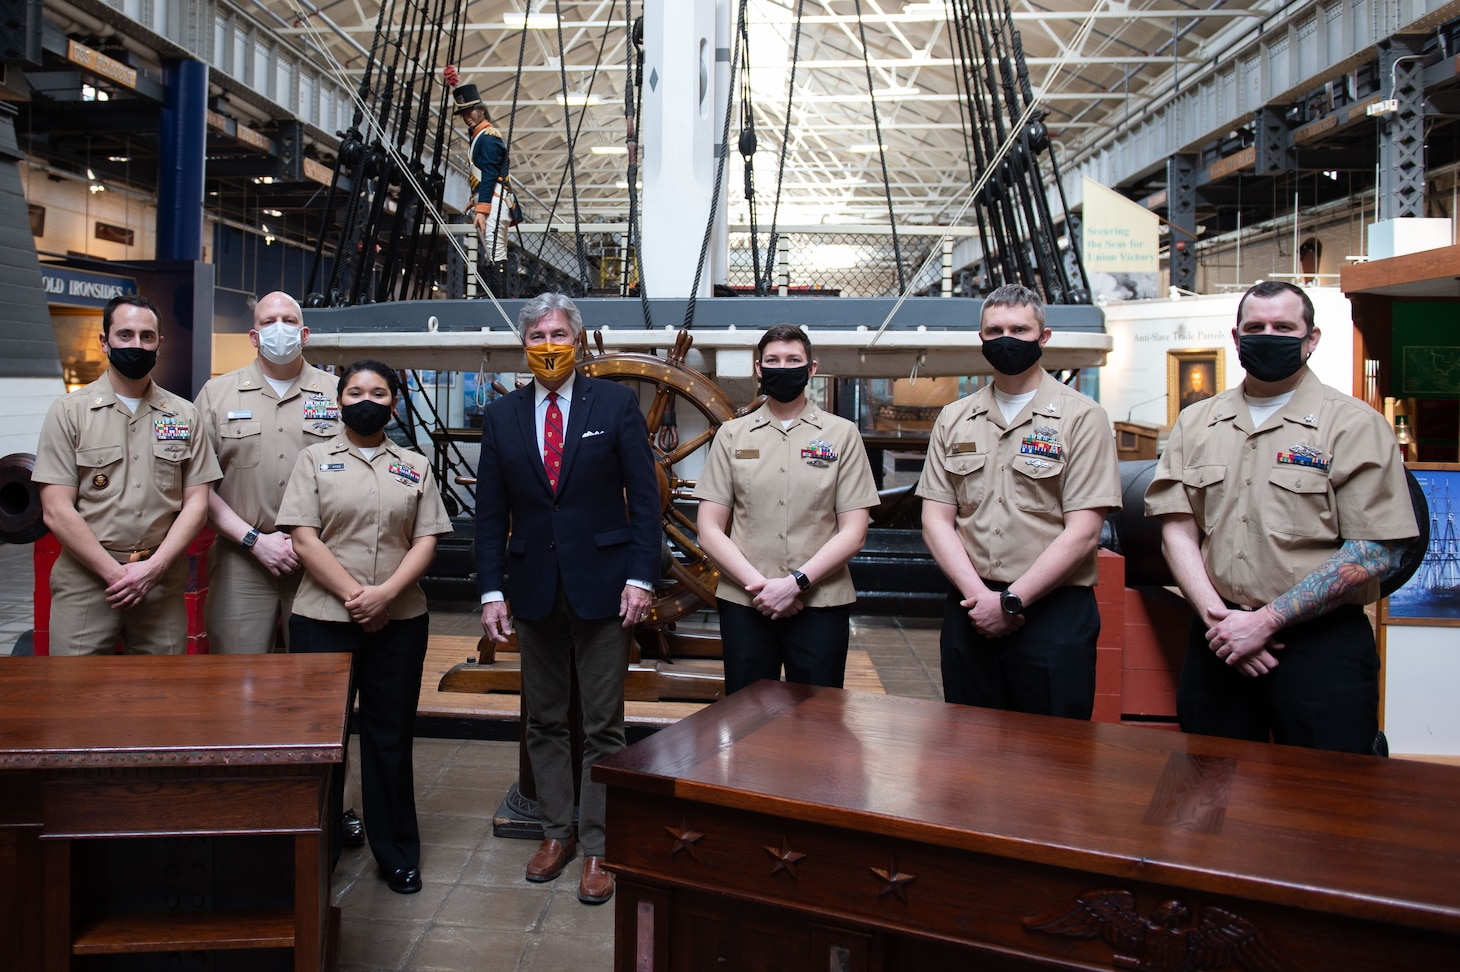 Former Secretary of the Navy, Kenneth J. Braithwaite, poses with Seabees during an executive desk presentation event at the National Museum of the U.S. Navy.